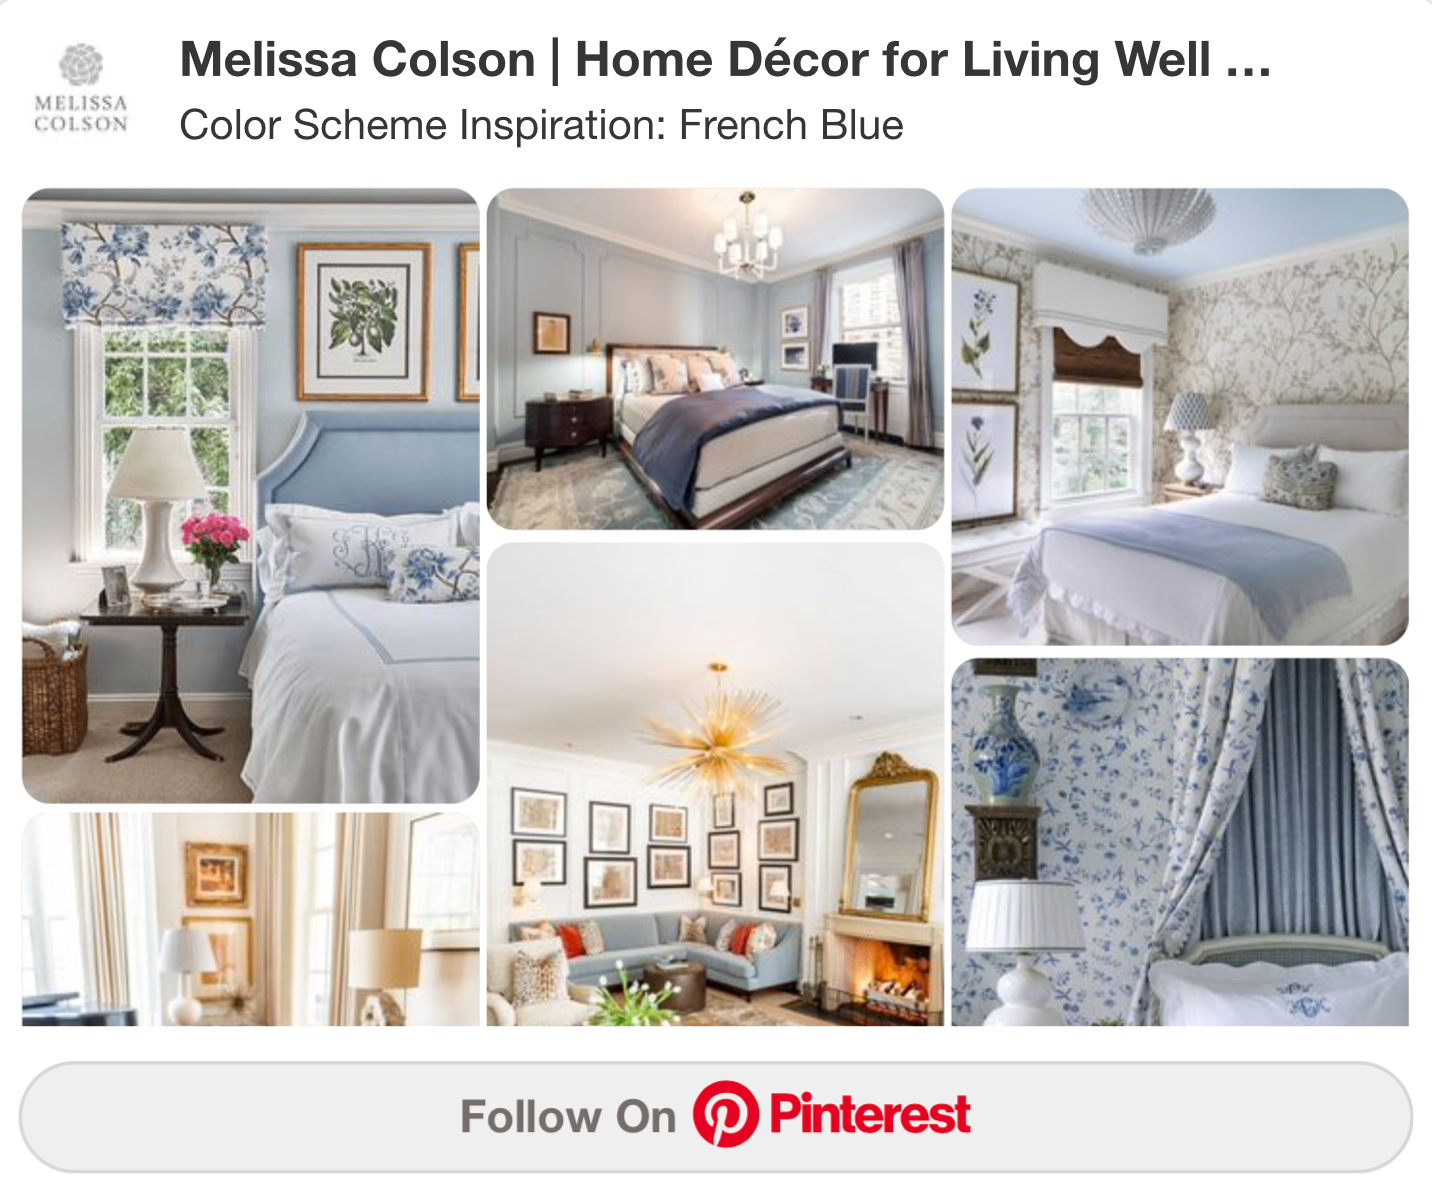 French Blue Color Scheme Inspiration Board